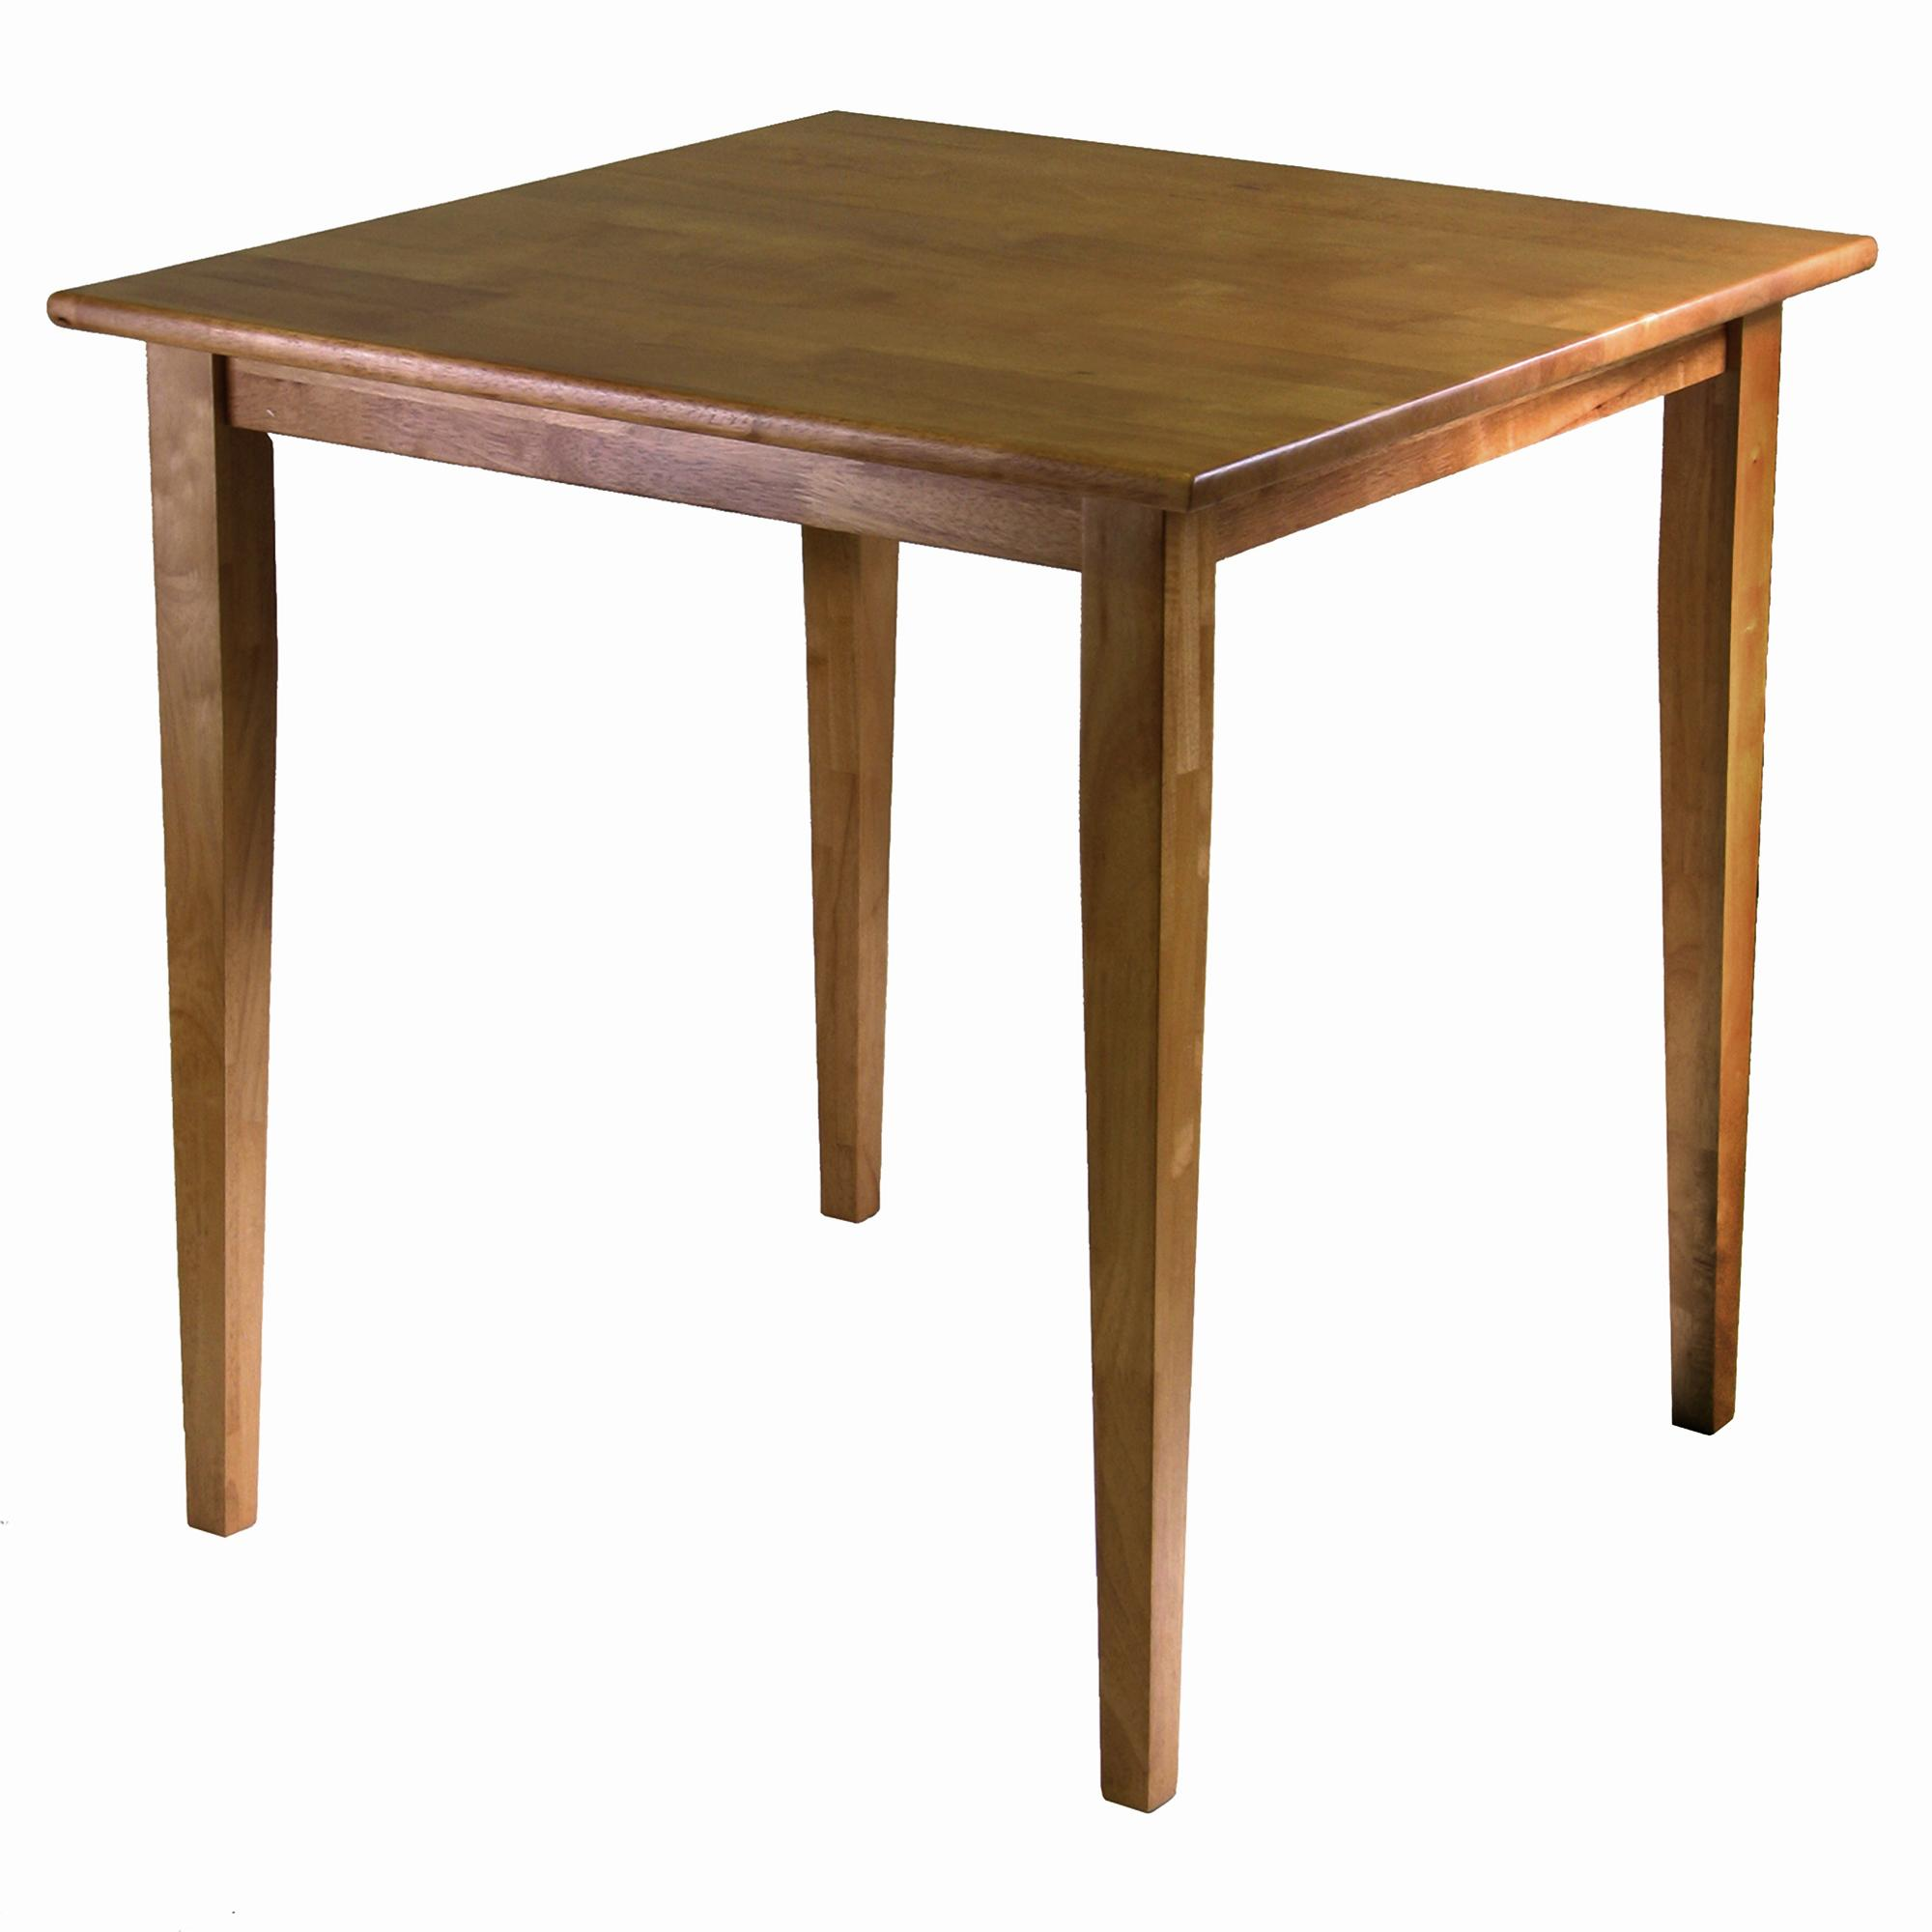 Wooden square dining table - View Larger